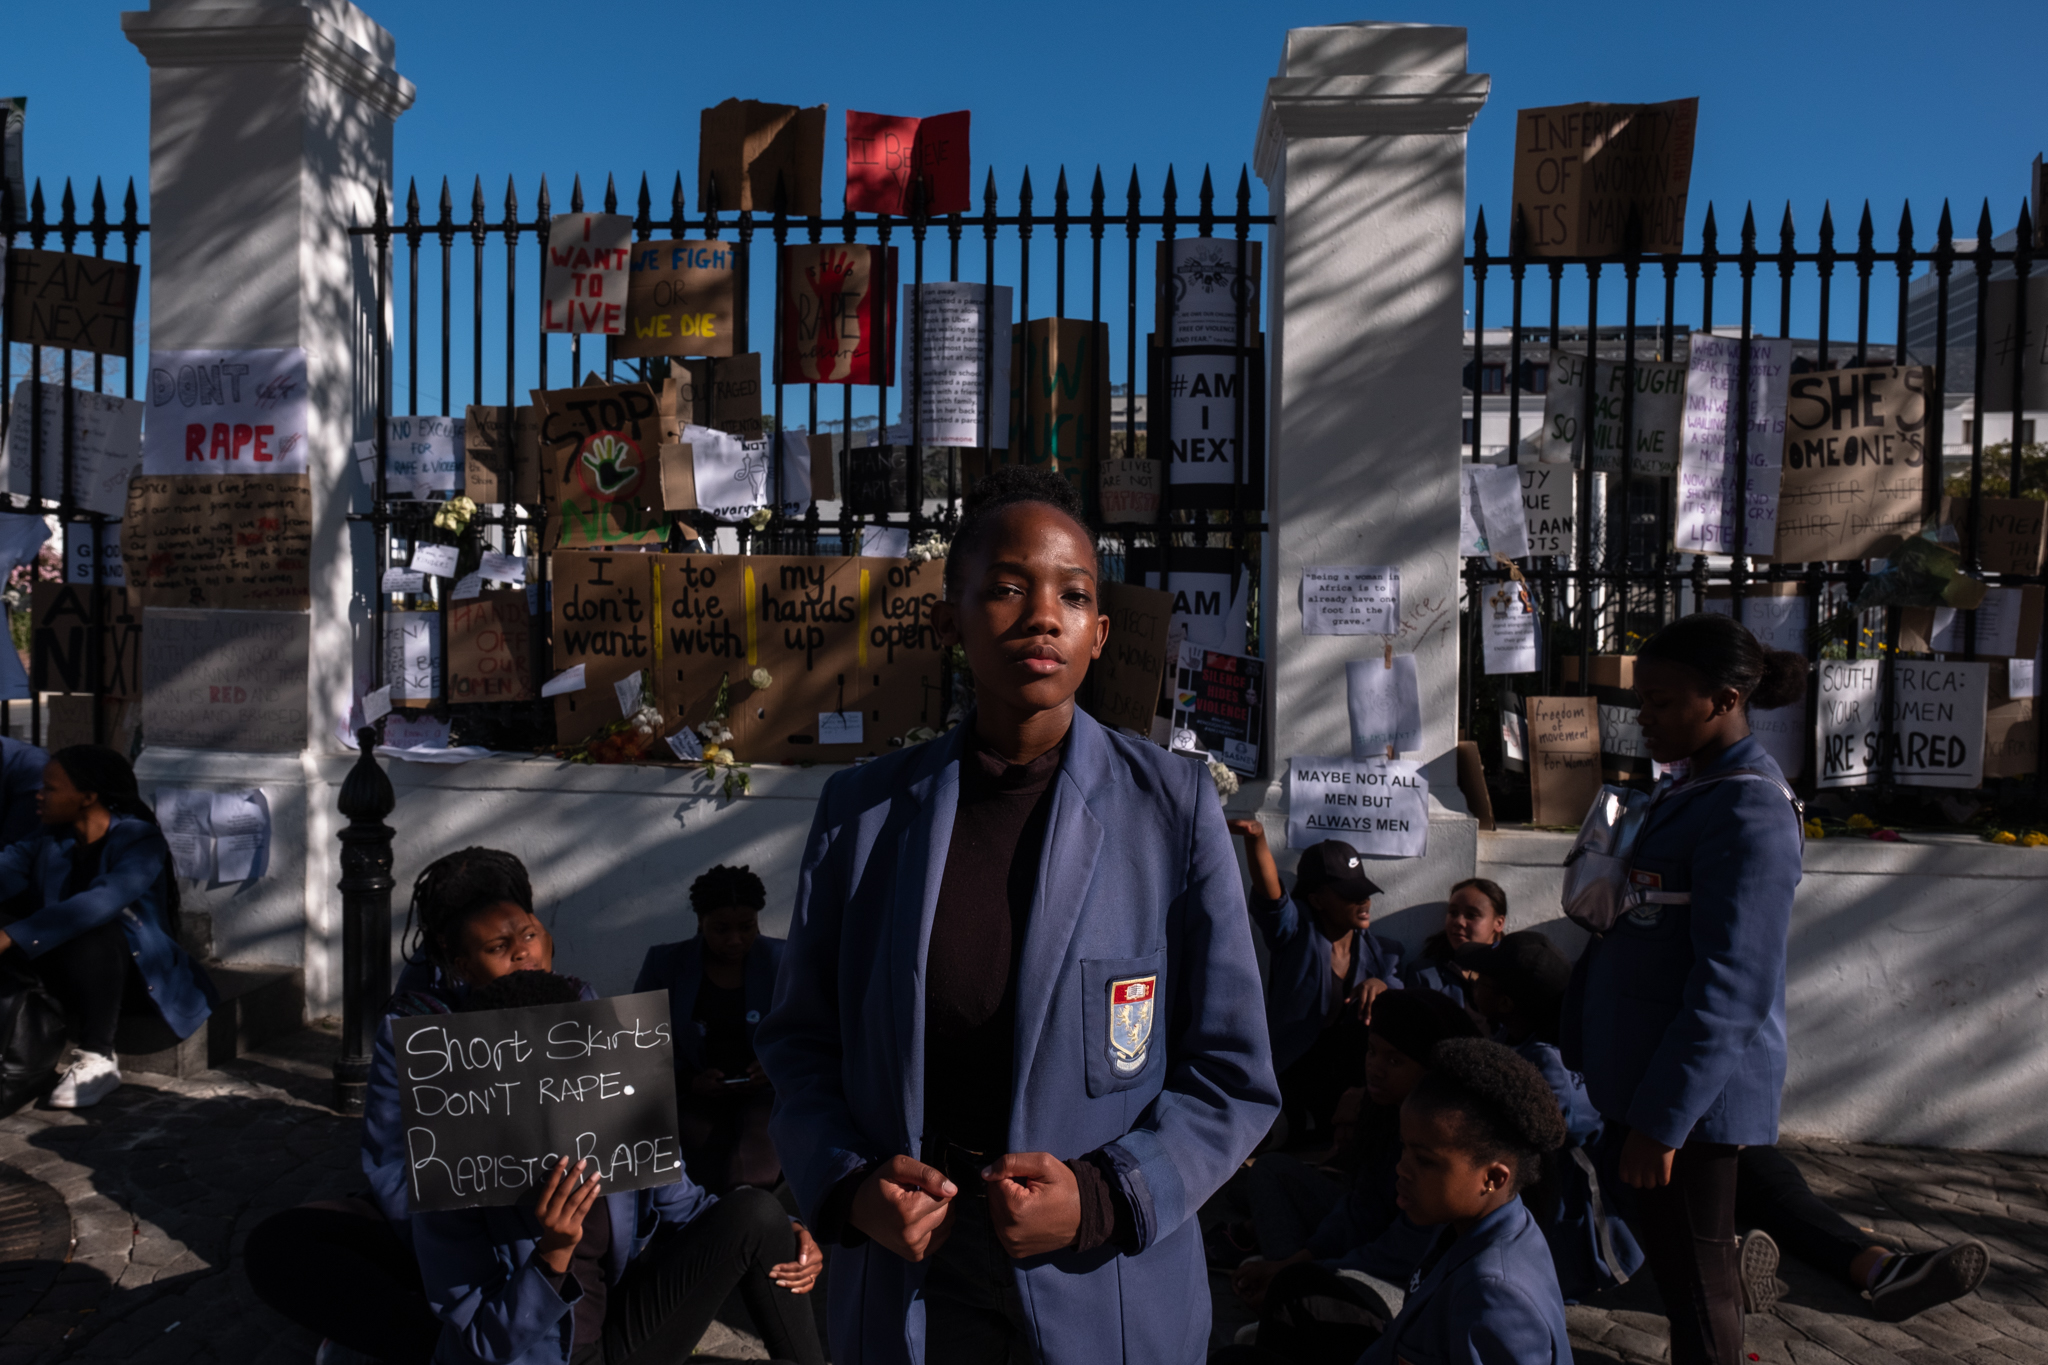 """6 September 2019: Abigail Bolisiki, a Sans Souci High School student from Gugulethu: """"The most infuriating thing is that the men who are supposed to be protecting us, according to patriarchy, are the ones that are killing us. Why do we have to survive and not live? Because we are also human. Why do we have to fight more than men for our space on this land whereas men are entitled to their own space and way of living and it has to always affect us because we are inferior to them. I won't say it has been a success because not all the rapists and perpetrators have been caught. When we fight we die, when we don't fight we die. So we might as well fight and die trying so we know we did our part."""""""